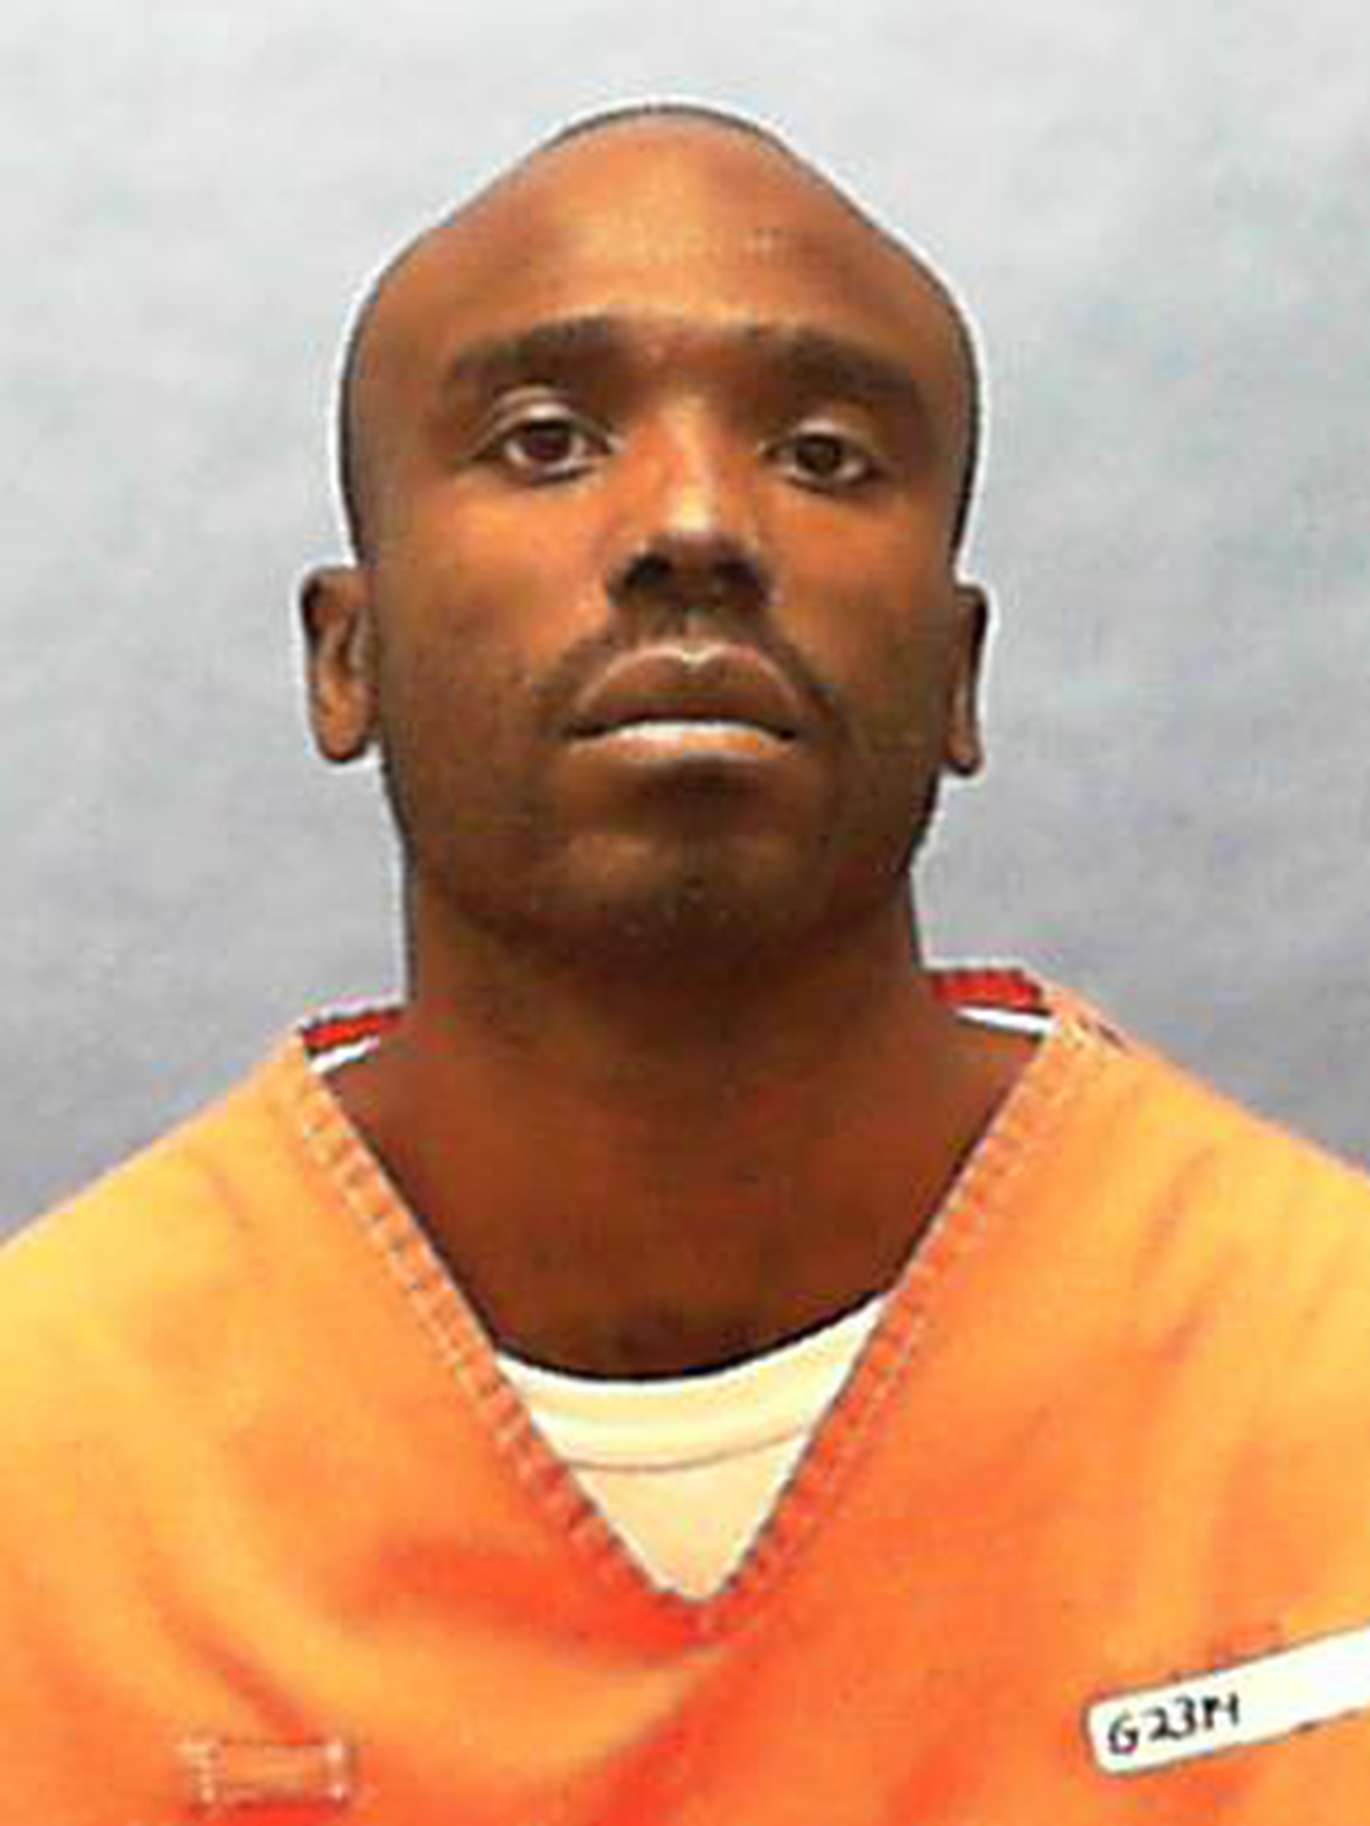 In May 2014, Dontae Morris was sentenced to death for killing two Tampa police officers on June 29, 2010. The next year, he was given a third death penalty sentence for the murder of 21-year-old Derek Anderson. But that sentence was overturned in 2018 by the Florida Supreme Court. Morris shot and killed officers David Curtis and Jeffrey Kocab in East Tampa after they pulled over him and his then-girlfriend for a missing tag. He started his sentence on June 3, 2014.